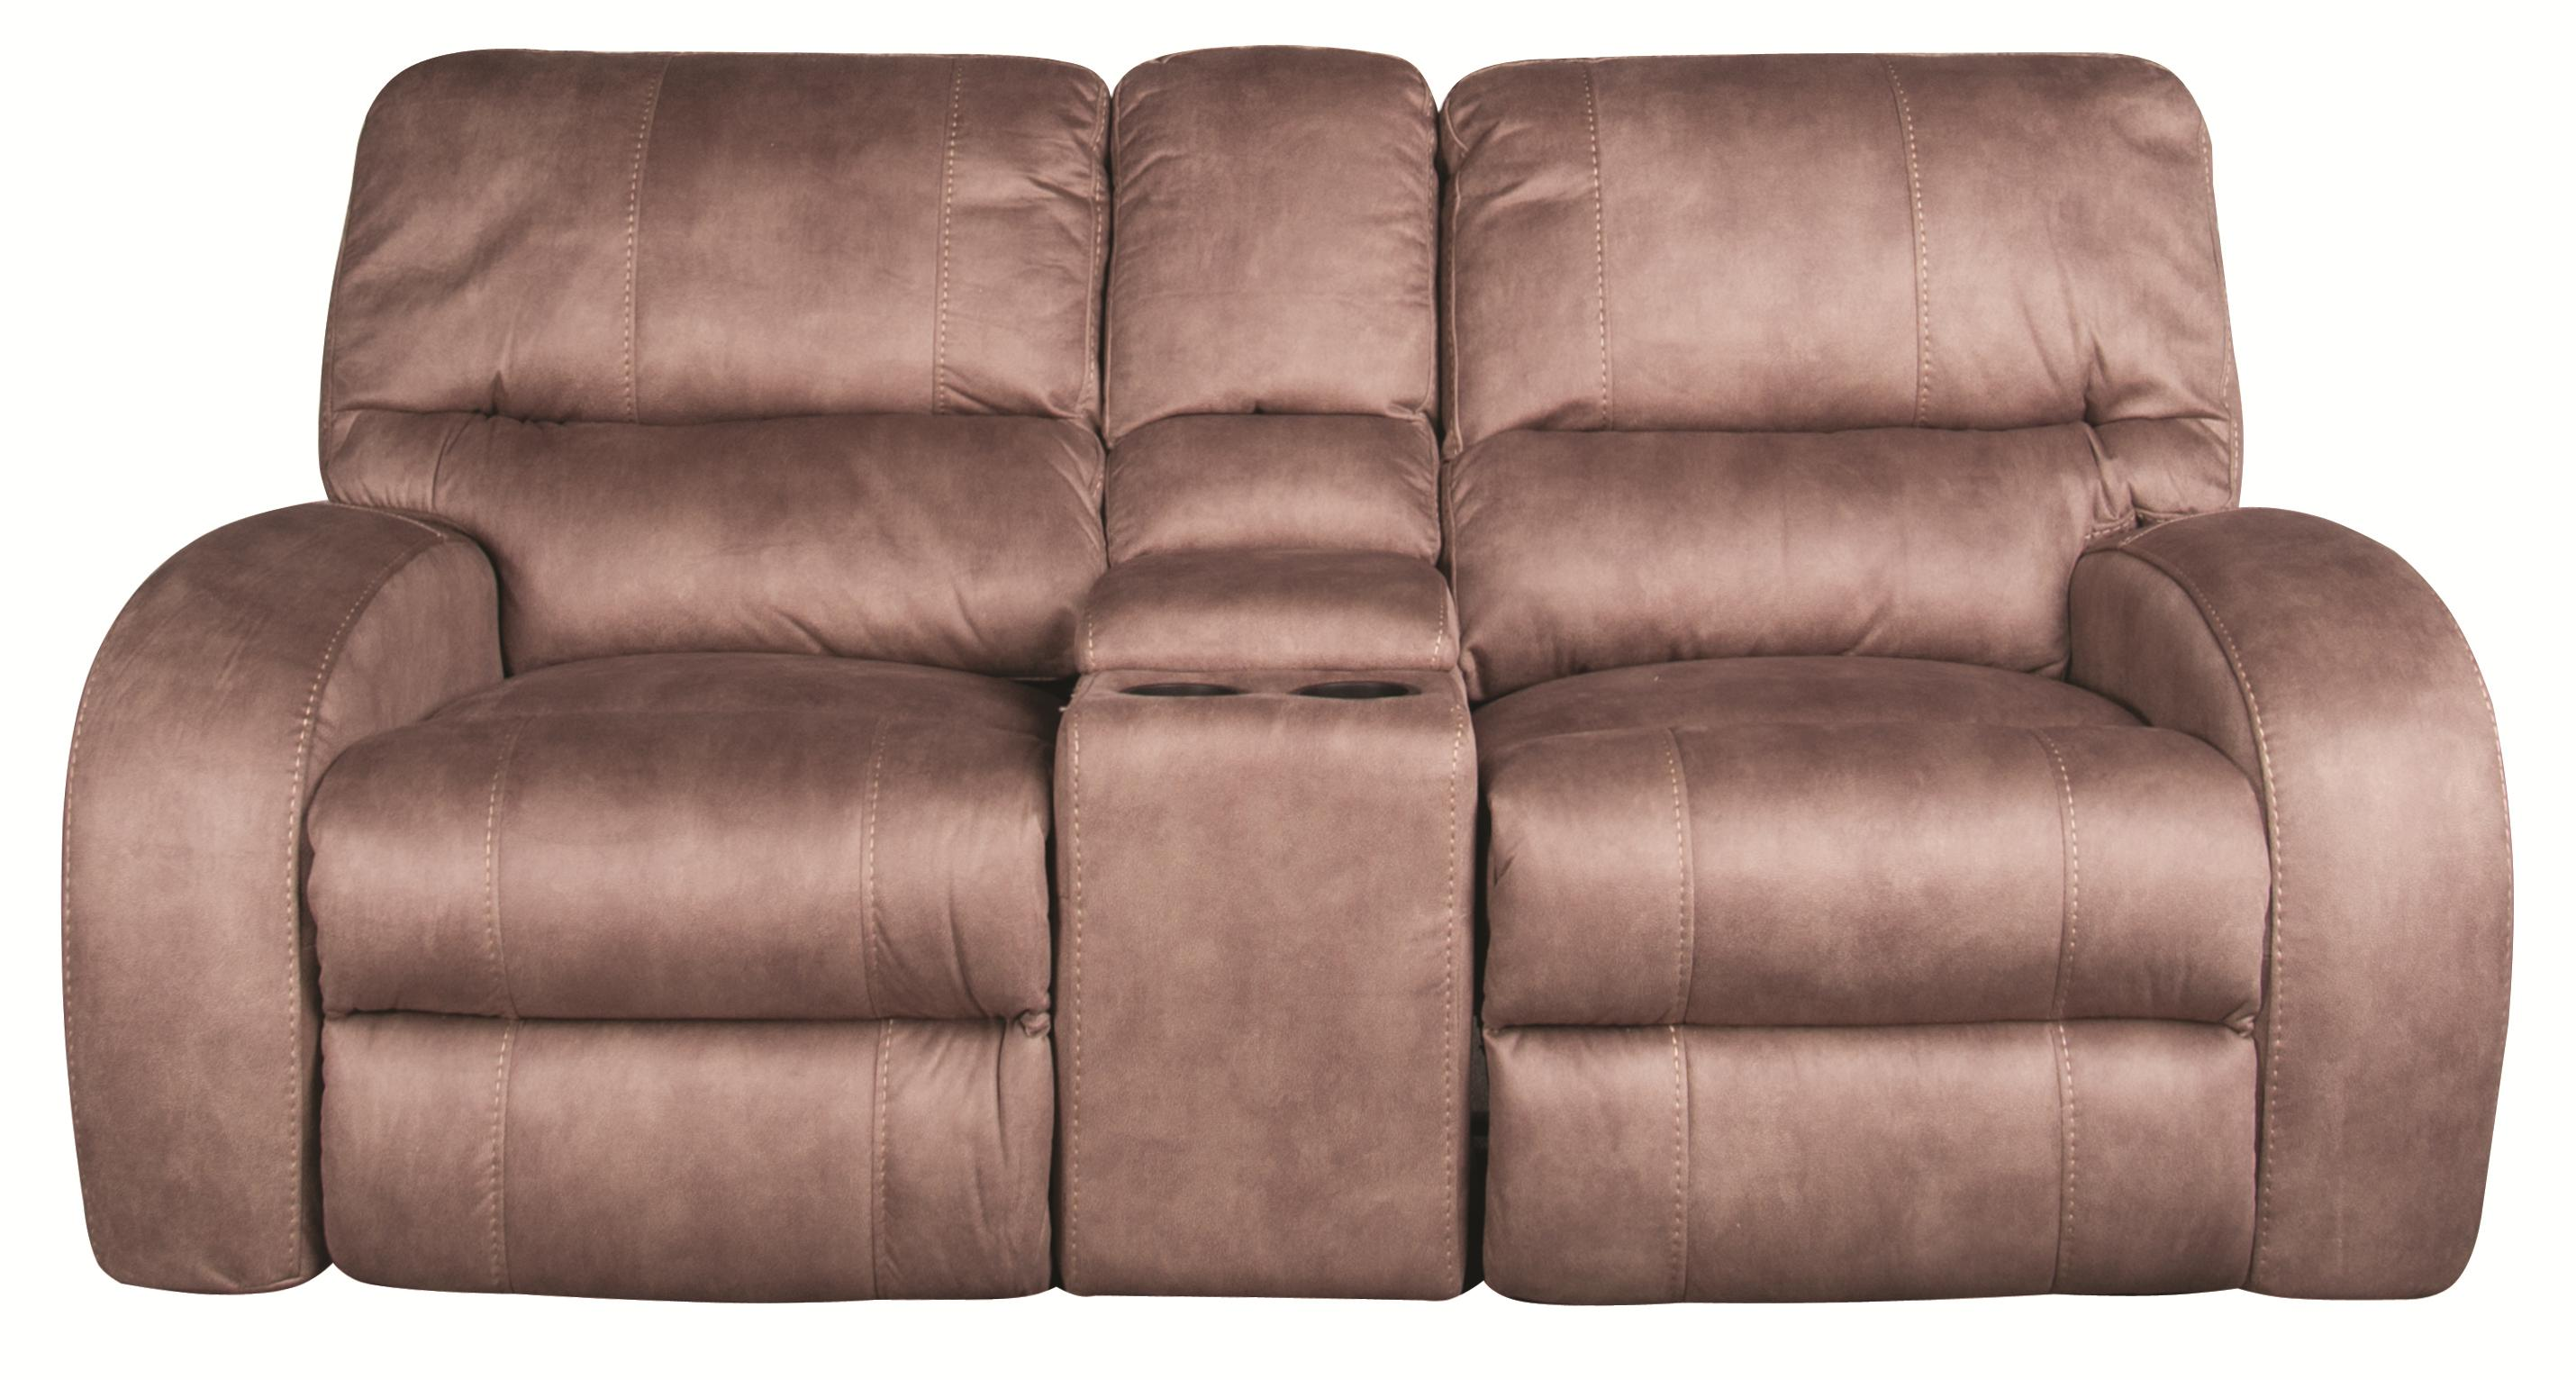 Morris Home Furnishings Caiden Caiden 3-Piece Glider Reclining Loveseat - Item Number: 147849903